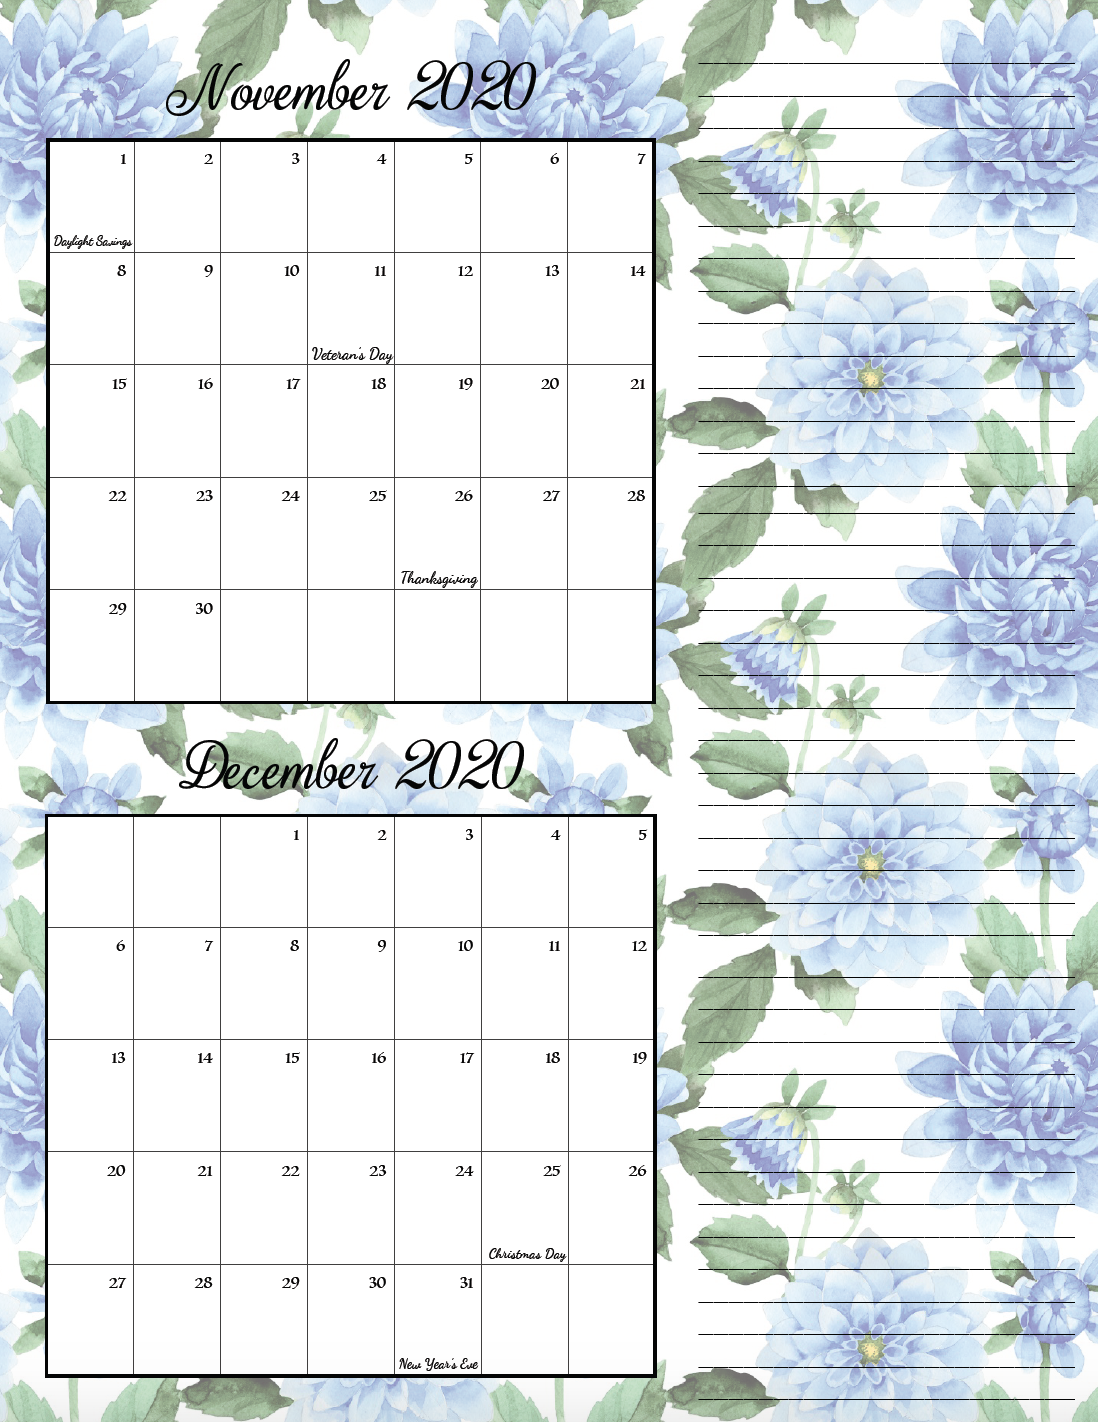 Floral theme November/December bimonthly calendar.